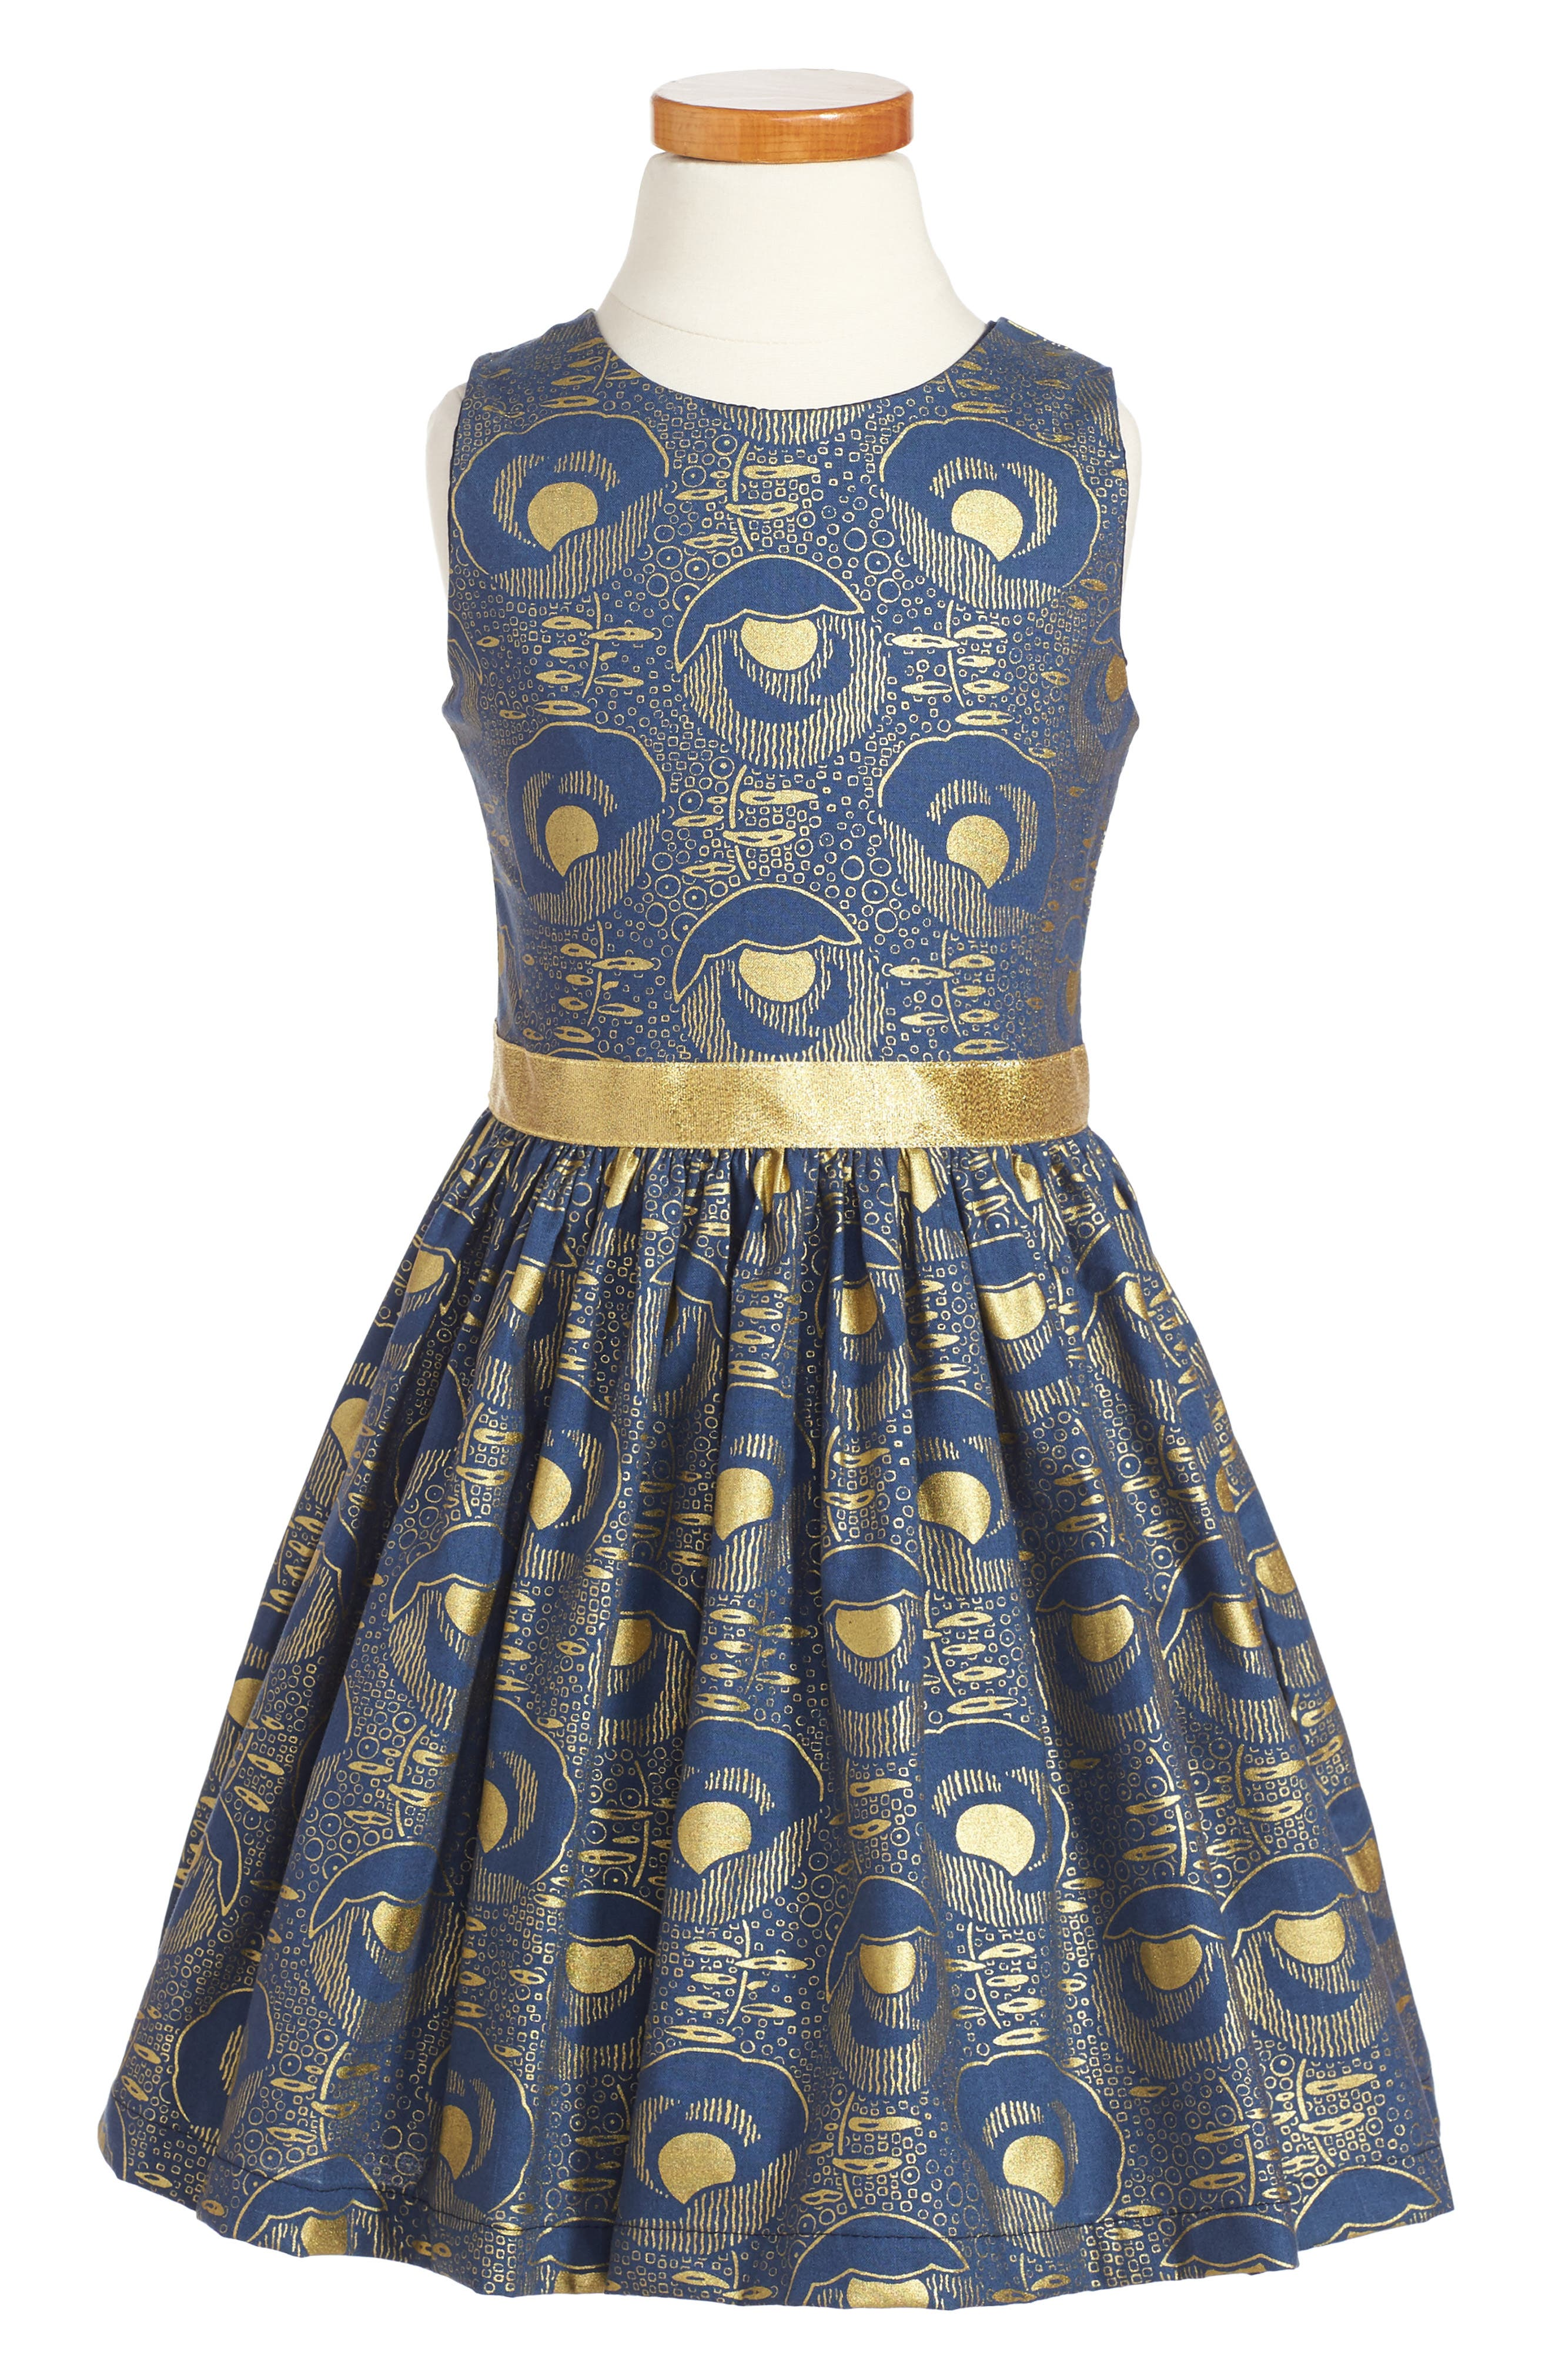 Fiveloaves Twofish Mollie Art Noveau Party Dress (Toddler Girls, Little Girls & Big Girls)